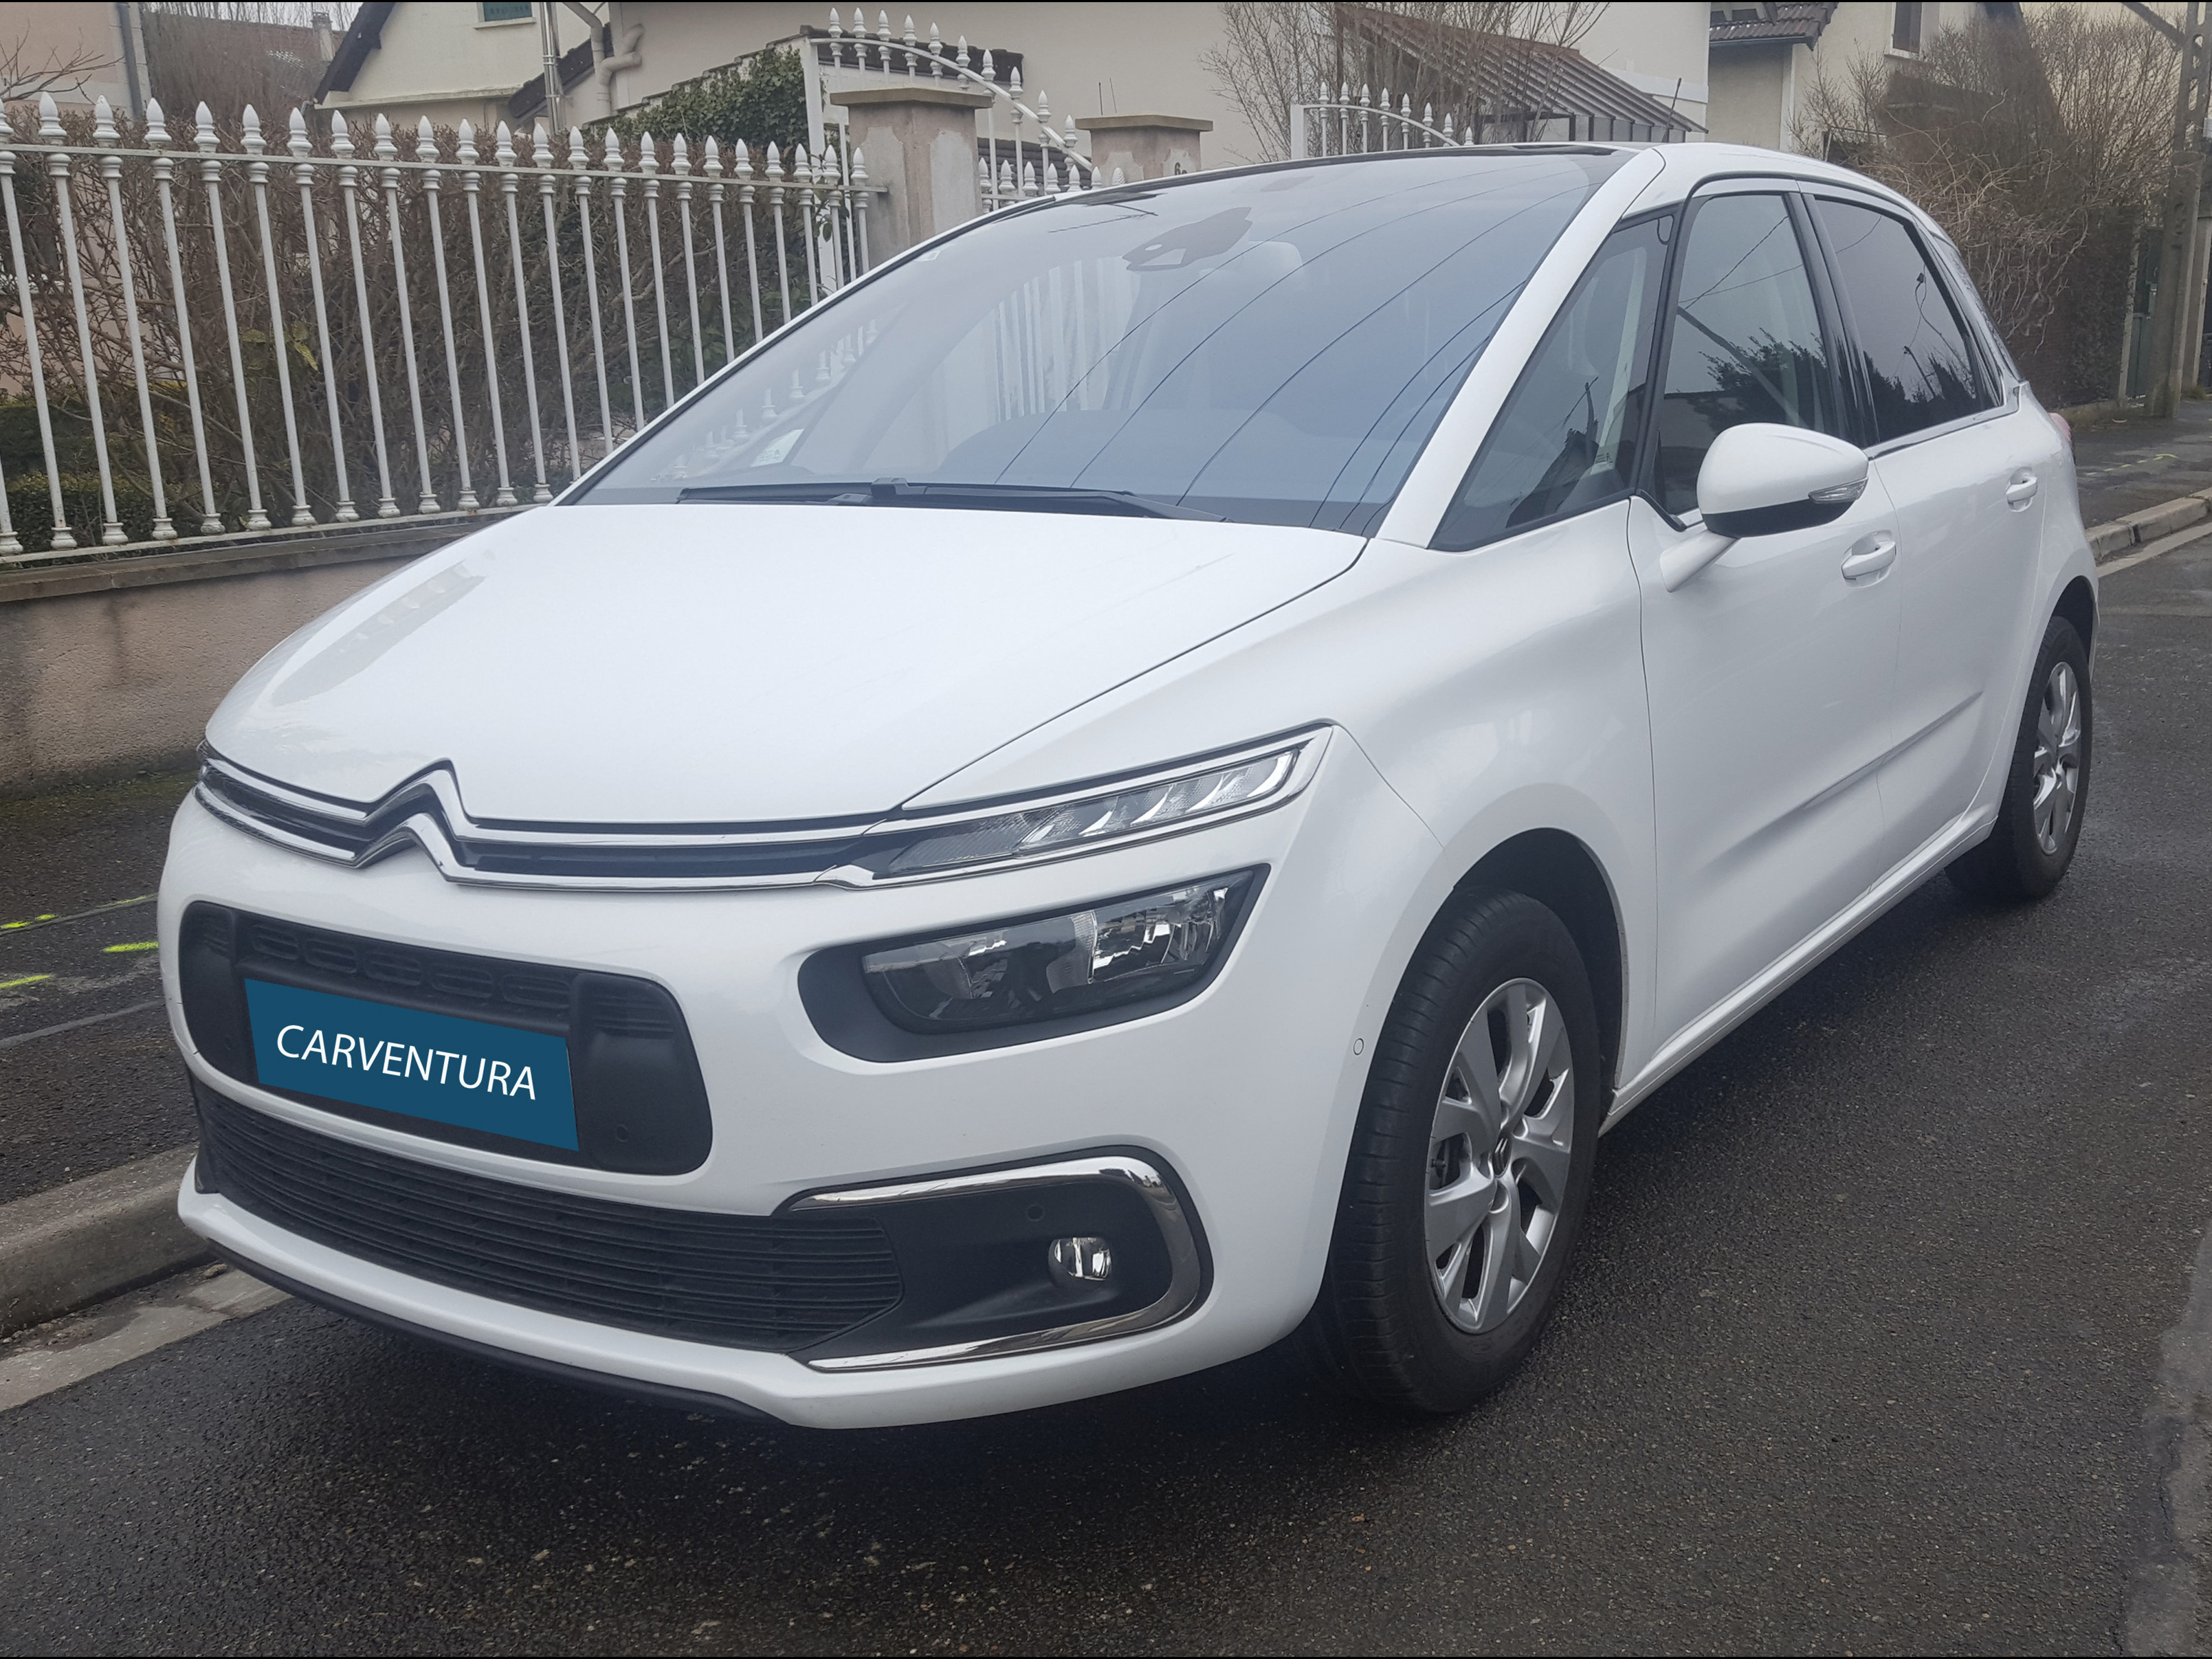 Citroën C4 Picasso Feel Versions : citroen c4 picasso generation ii 1 6 bluehdi 120 feel edition start stop carventura ~ Medecine-chirurgie-esthetiques.com Avis de Voitures